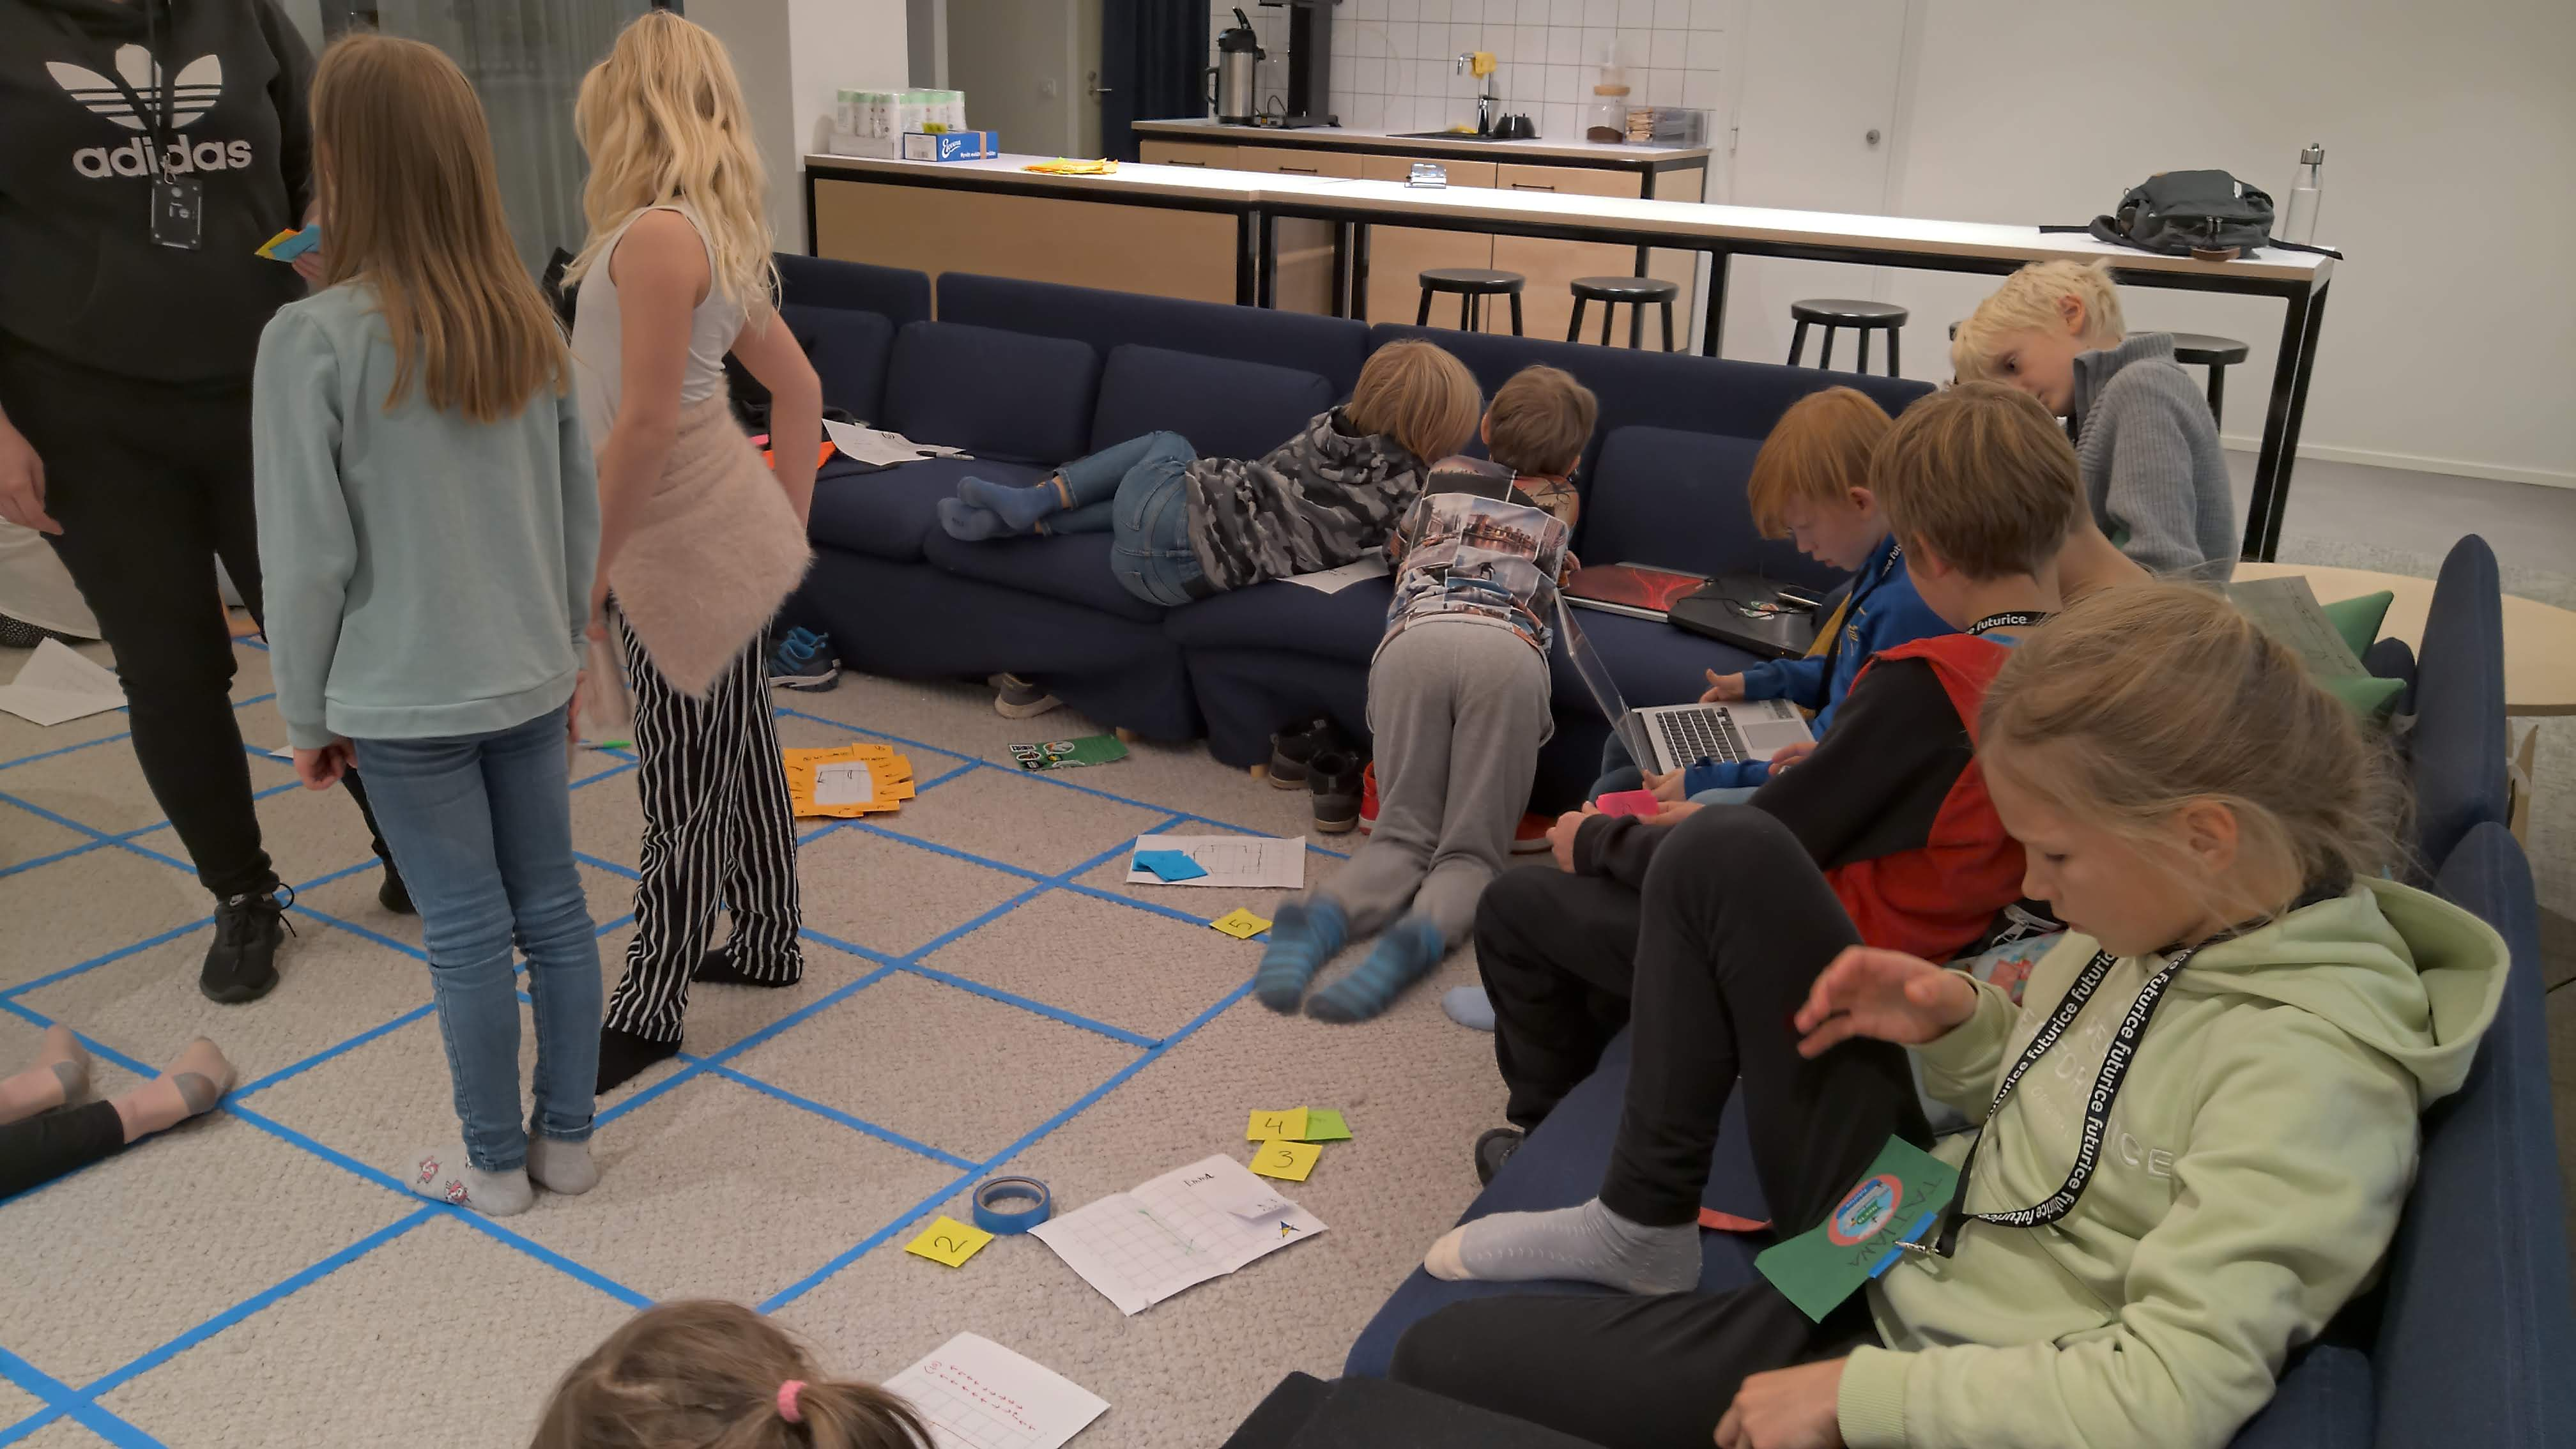 A square grid on the floor made with blue tape, children playing around the floor and sofas